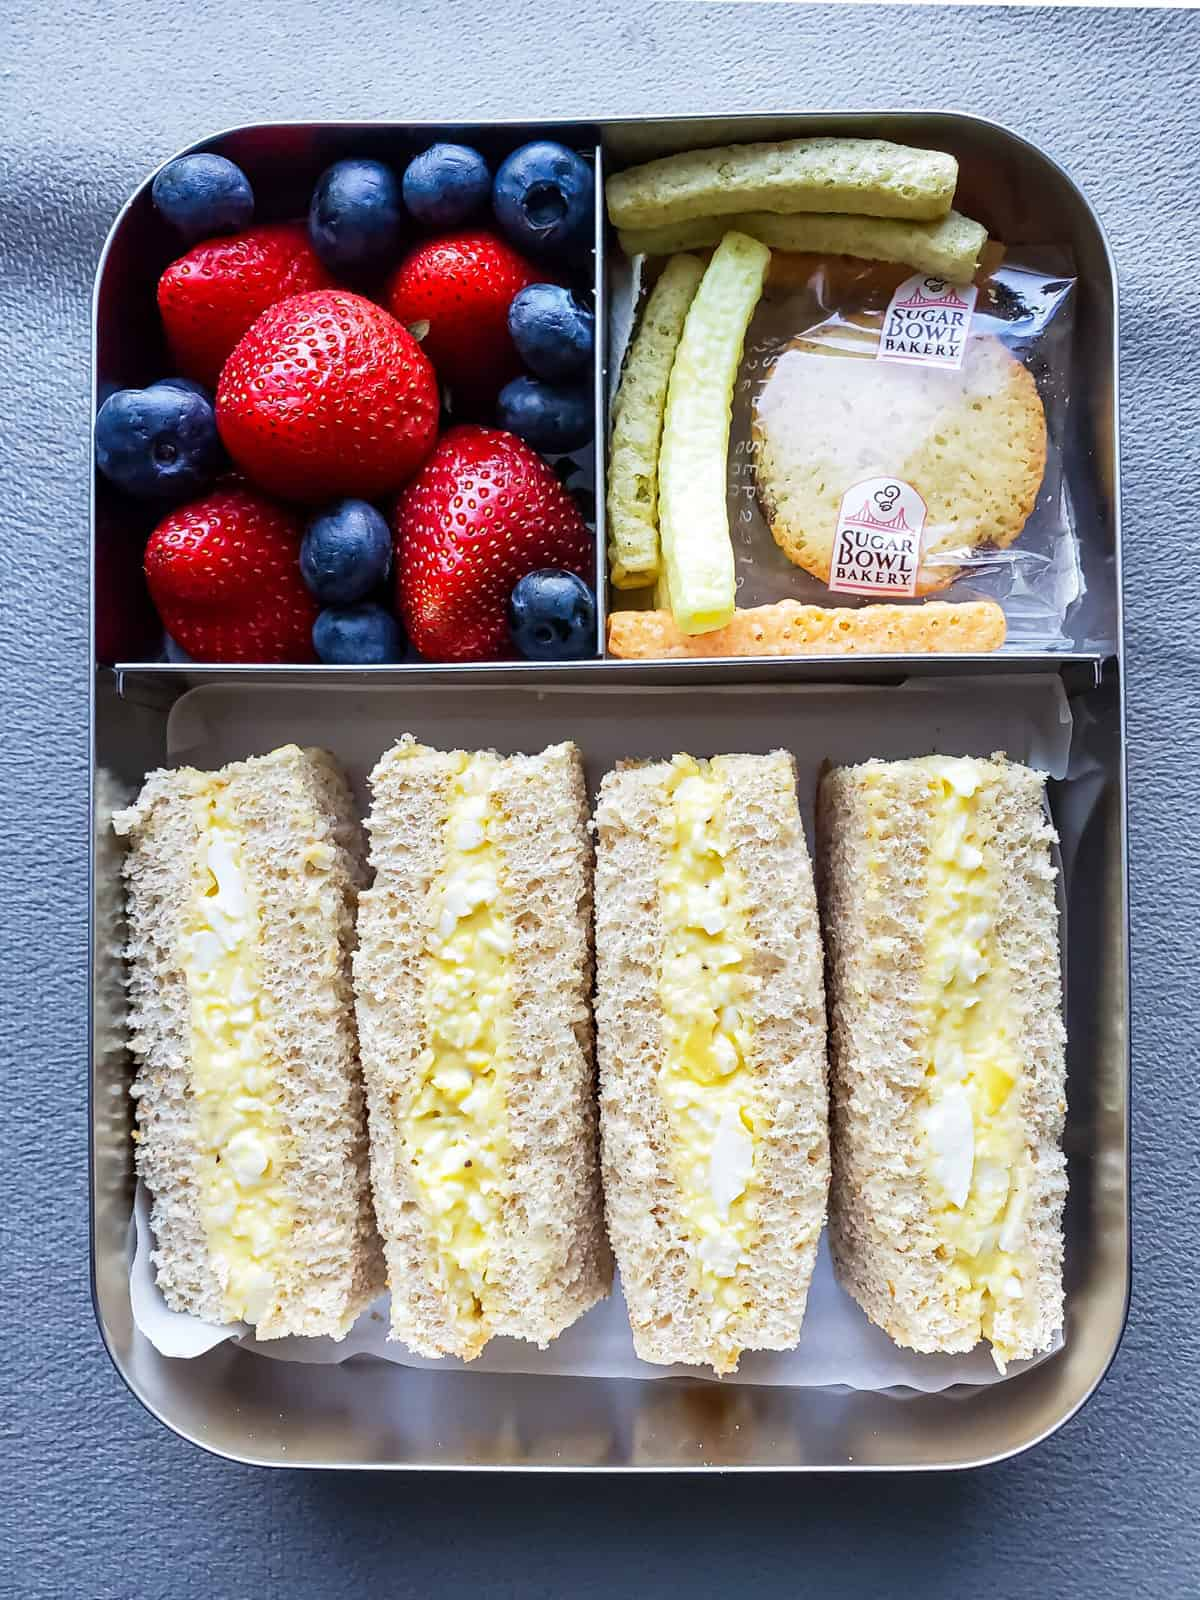 Egg Salad finger sandwiches with berries and sweet treat in stainless steel lunchbox